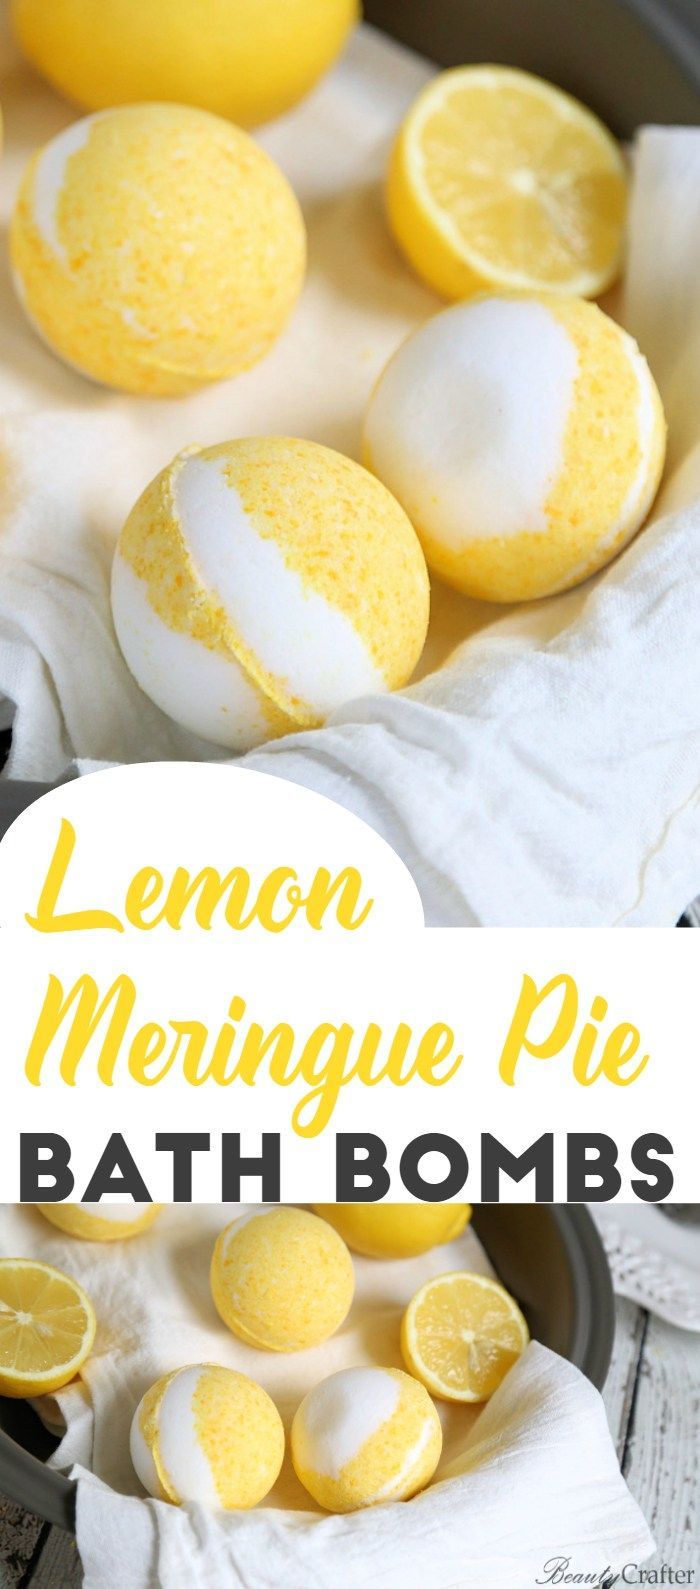 Lemon Meringue Pie Bath Bombs are the perfect uplifting gift. Great for a busy mom or someone who just needs their day brightened a bit. The smell of creamy sweet vanilla teamed with fresh lemon is good enough to eat and hard to be in a bad mood smelling.The scent really is good enough to eat, but don't…lol Lemon Meringue Pie Bath Bombs: Essential oils Lemon Essential oil– is purported to enhance mood and nourish the skin. The fresh scent is cheerful and clean smelling. Vanilla Essential…